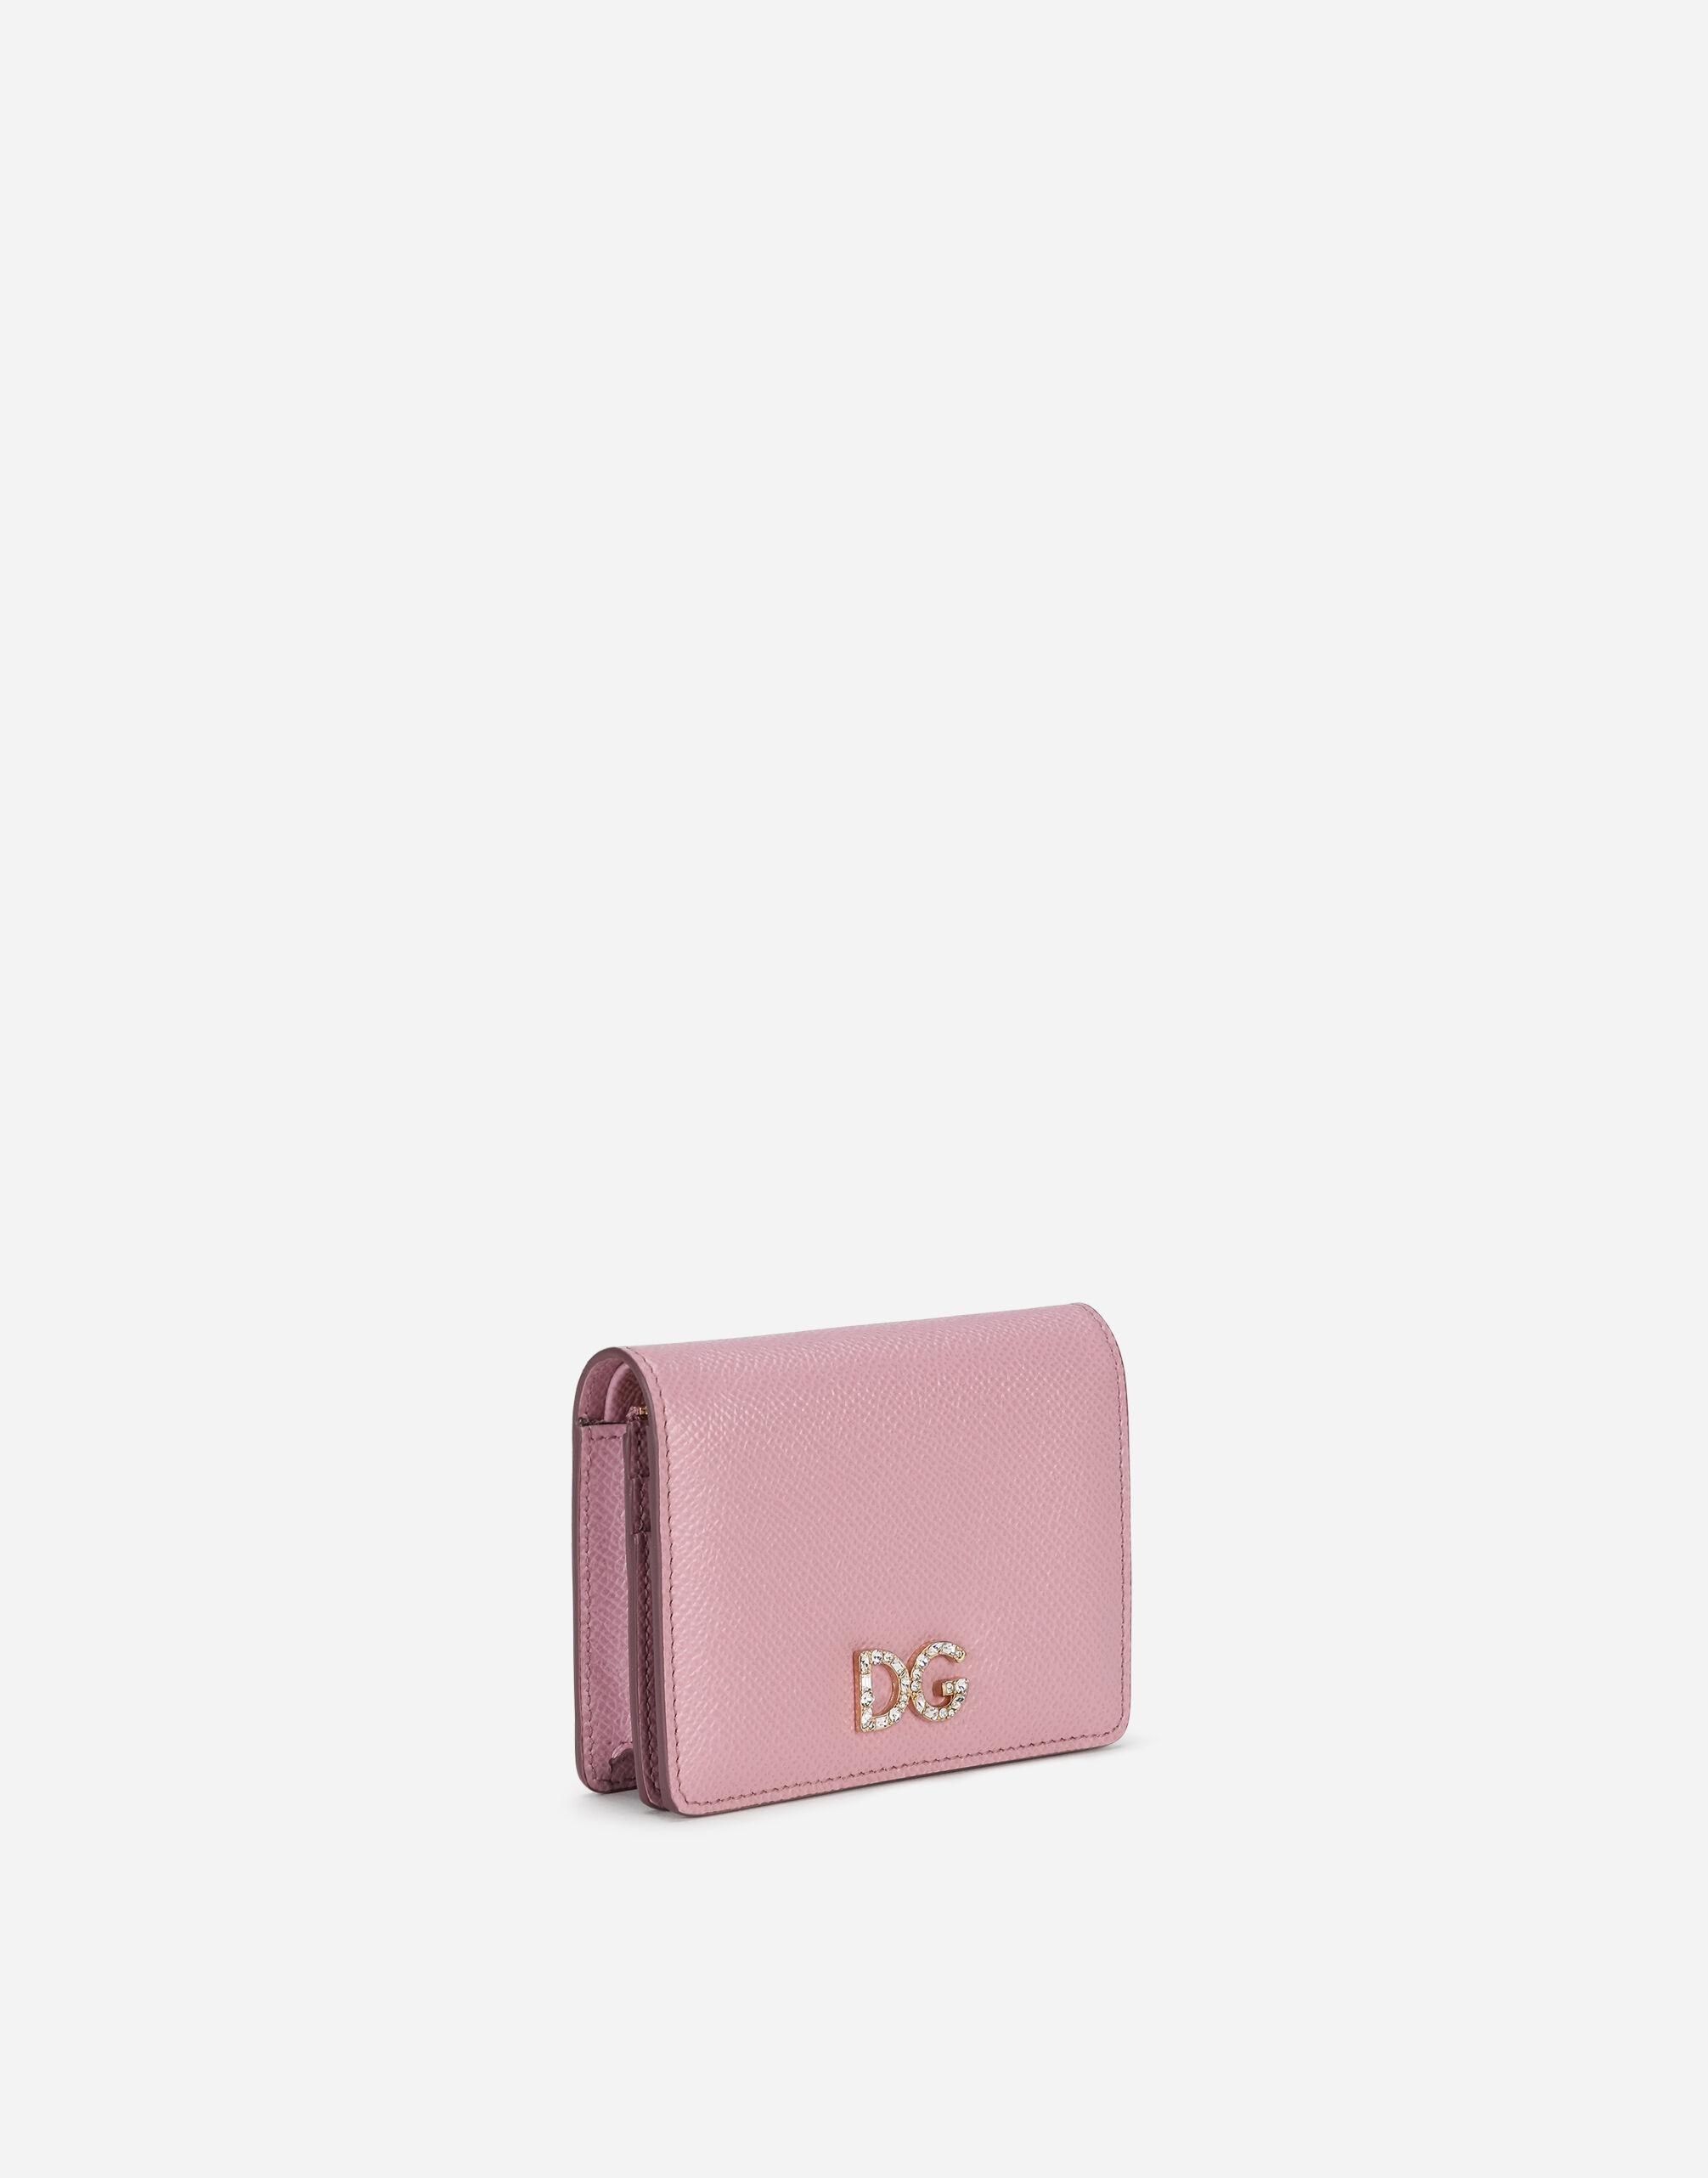 Small continental wallet in dauphine calfskin with rhinestone DG logo 1